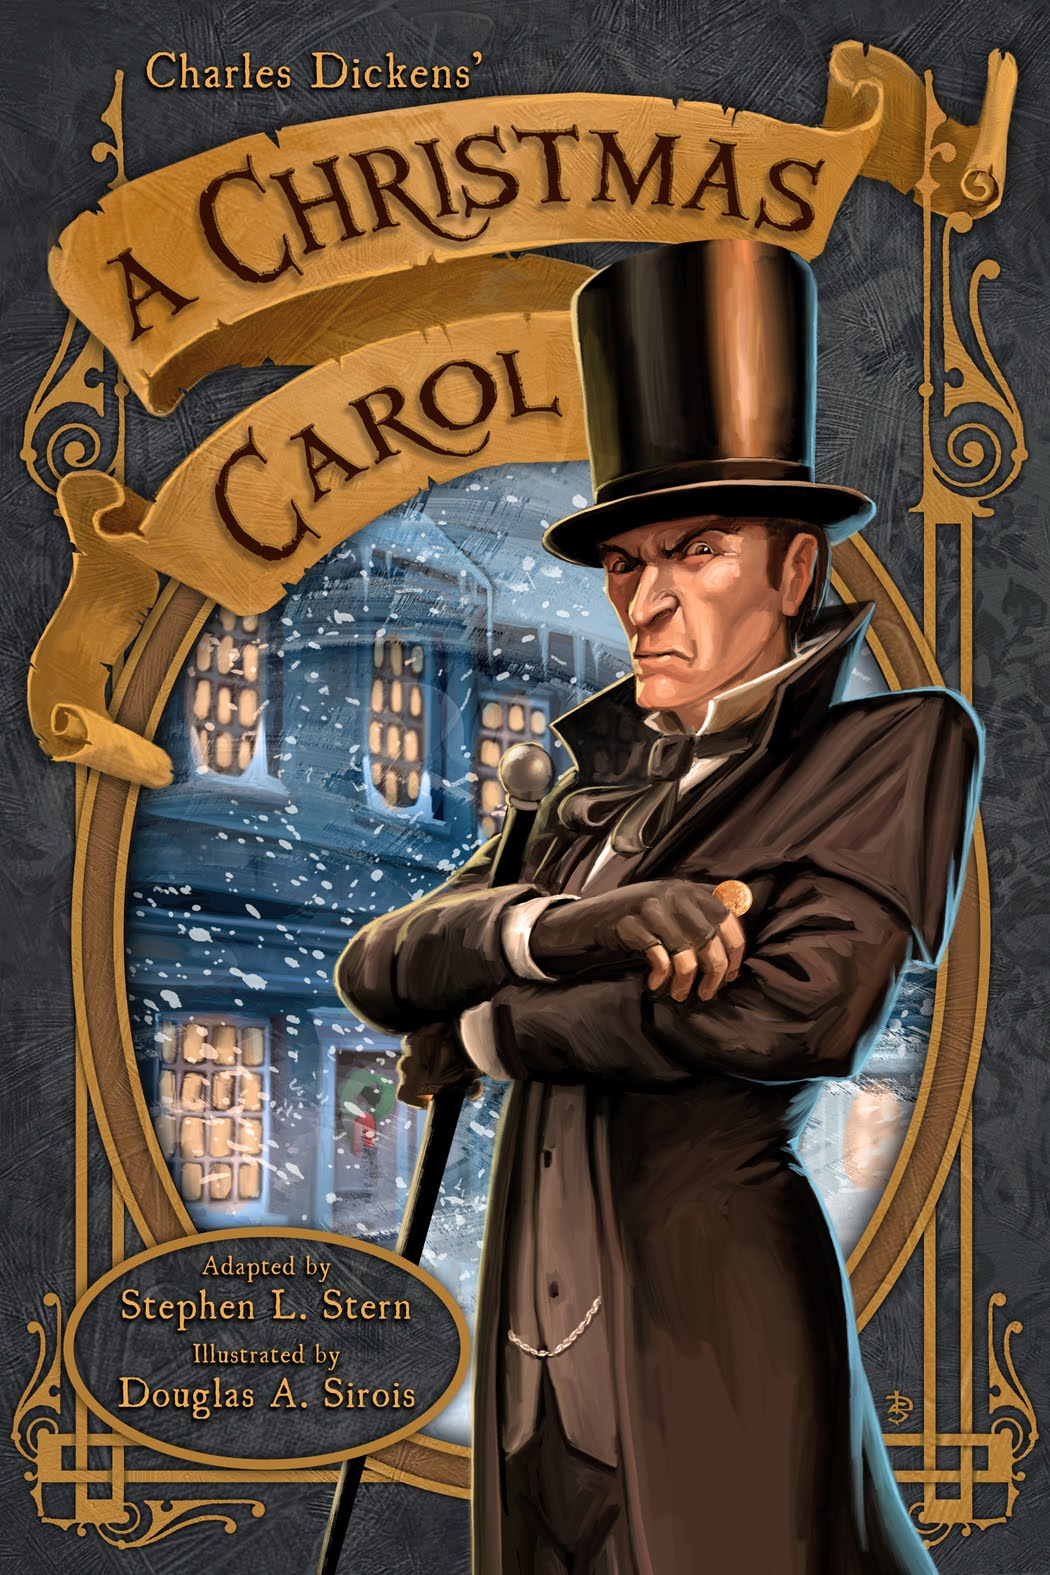 DAS ILLUSTRATION: Charles Dicken's A Christmas Carol by Stern and Sirois